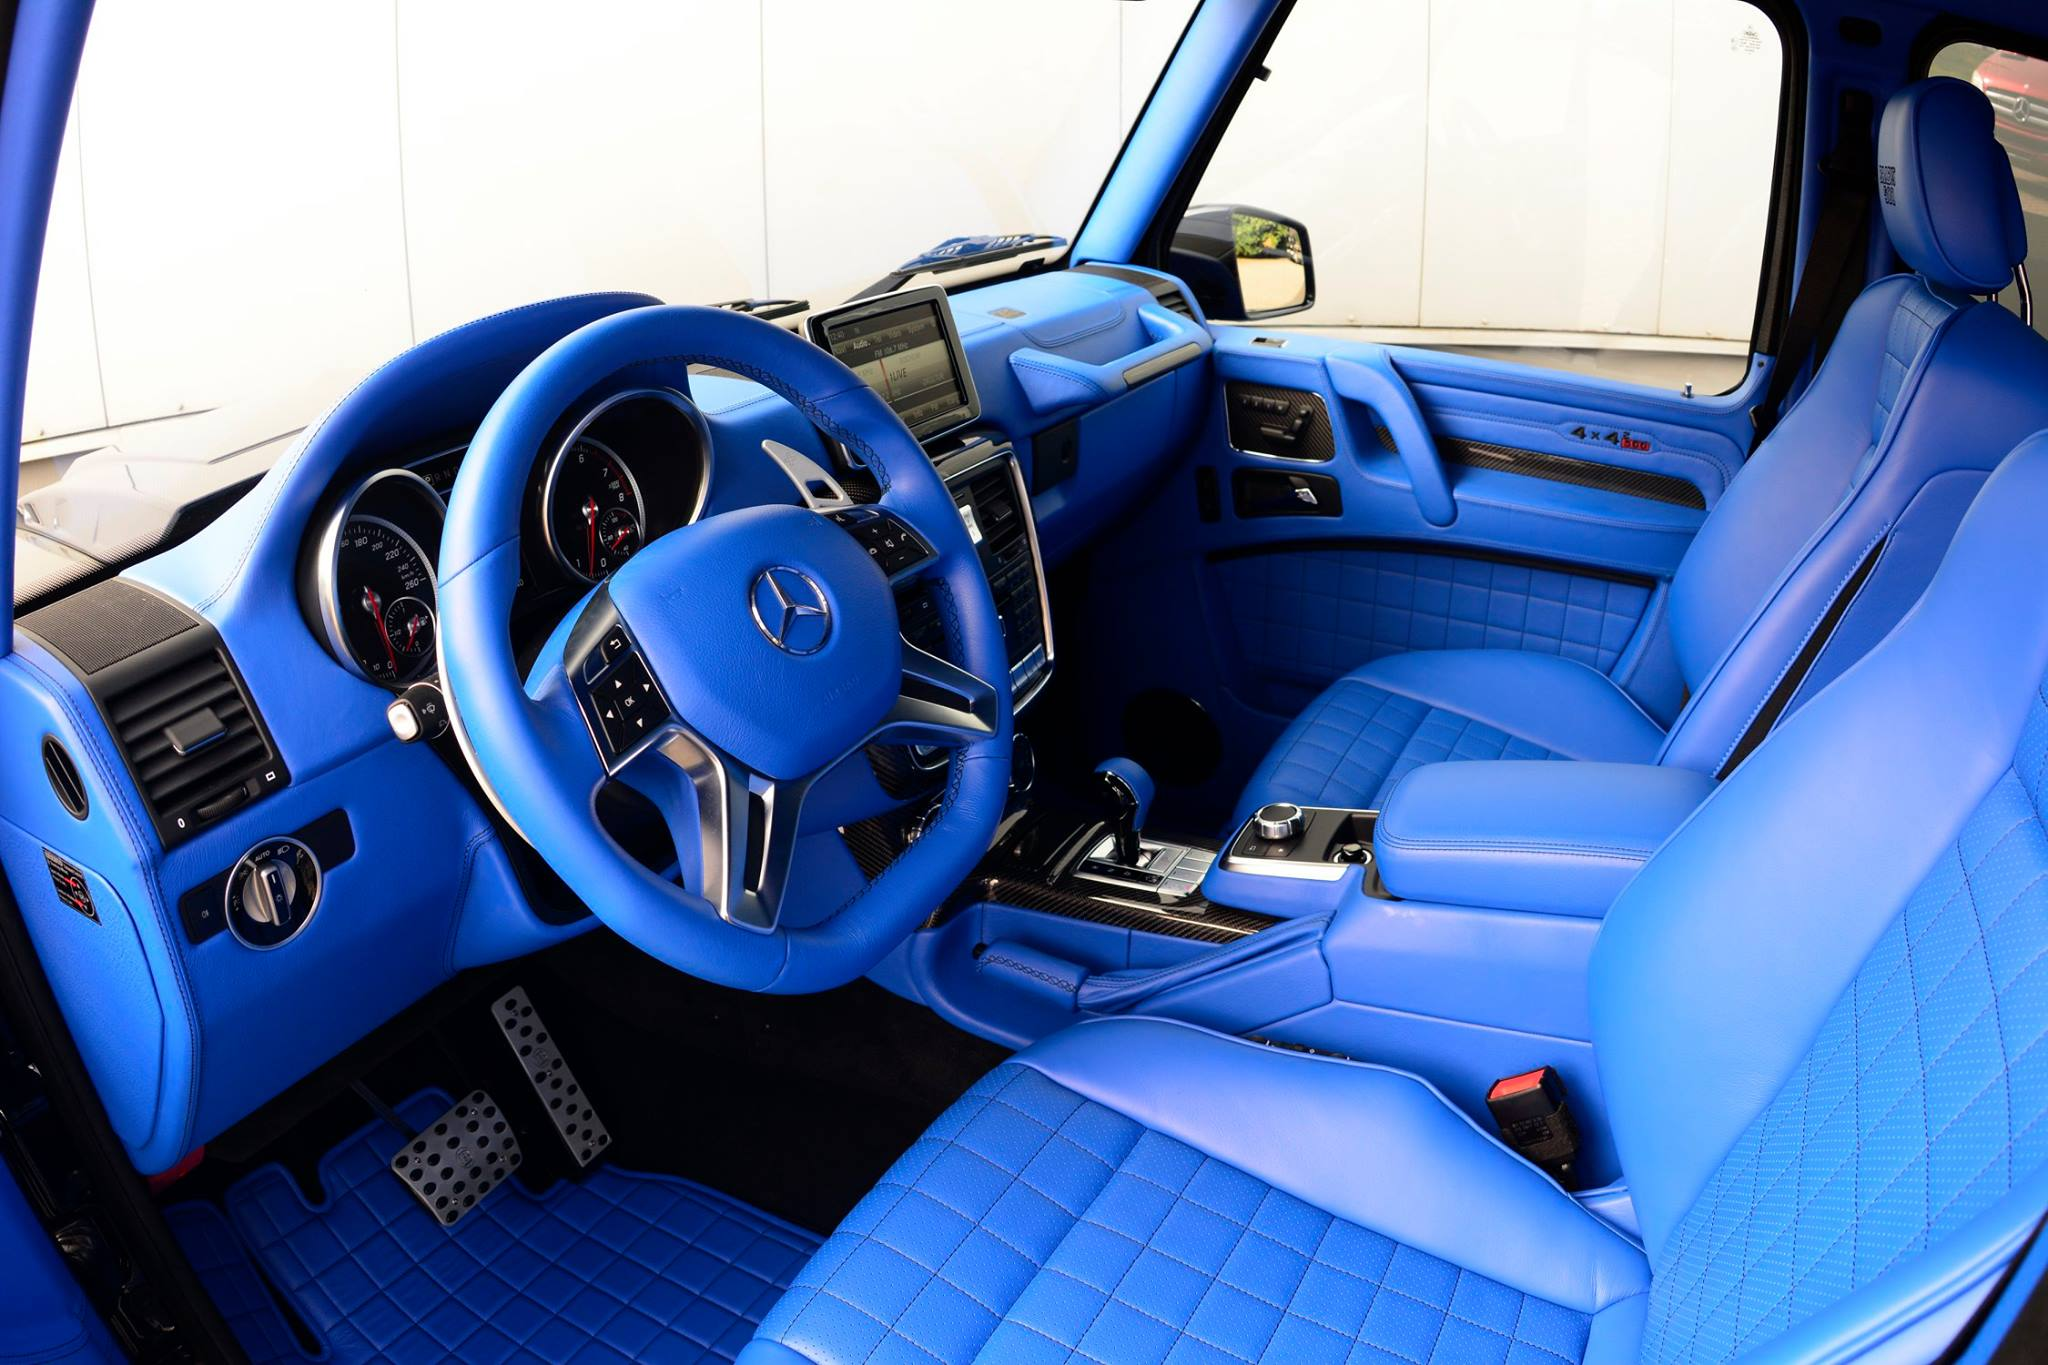 brabus g500 4x4 has red engine and smurf skin interior autoevolution. Black Bedroom Furniture Sets. Home Design Ideas